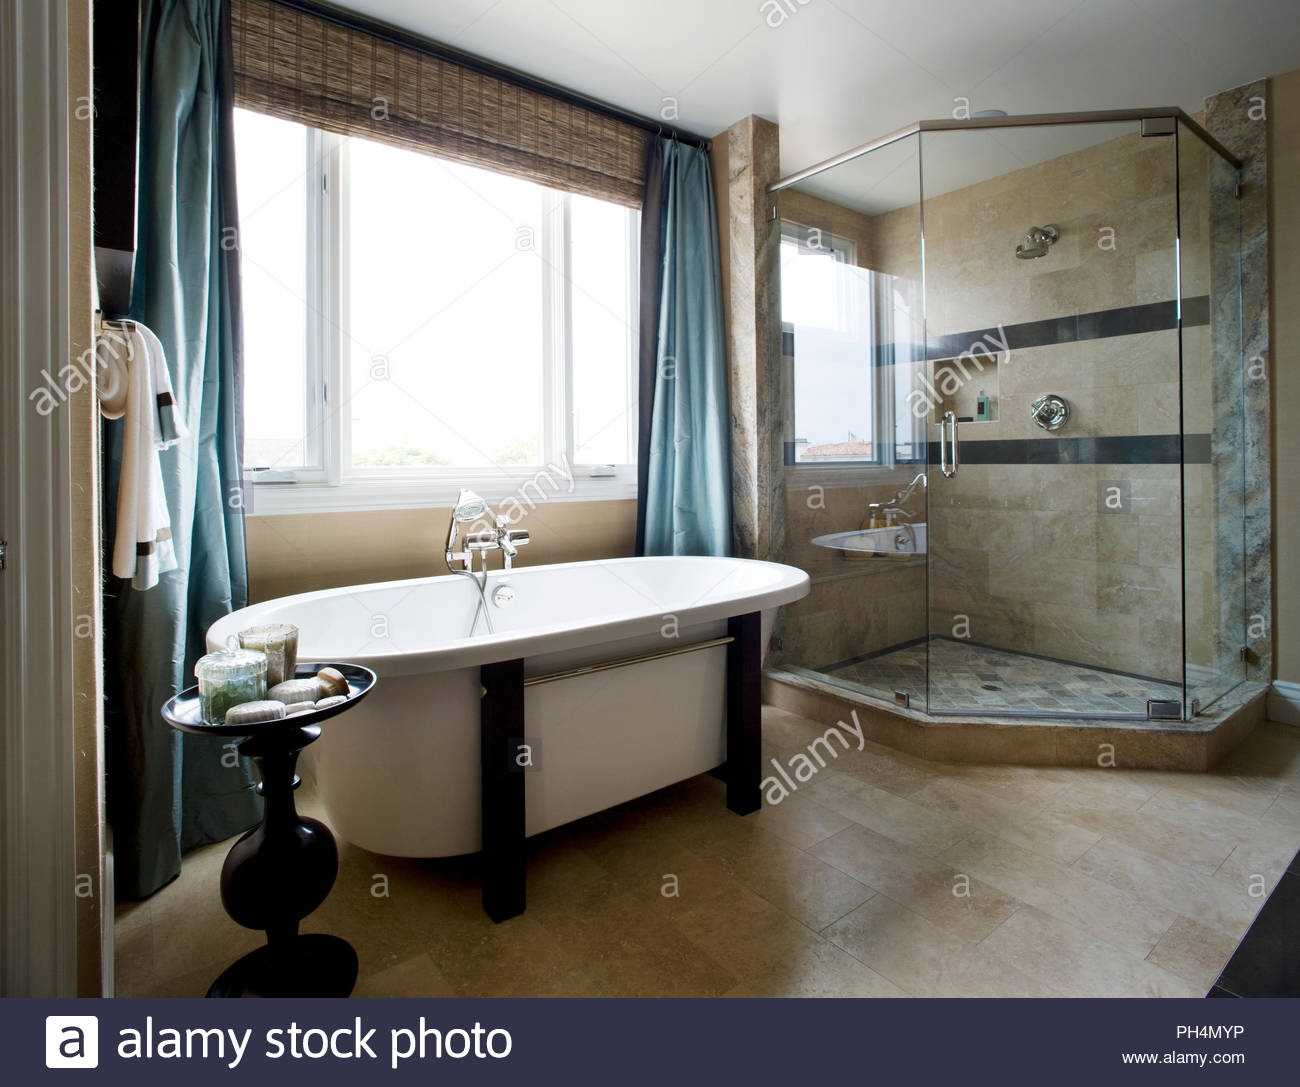 Bath and shower in bathroom - Stock Image